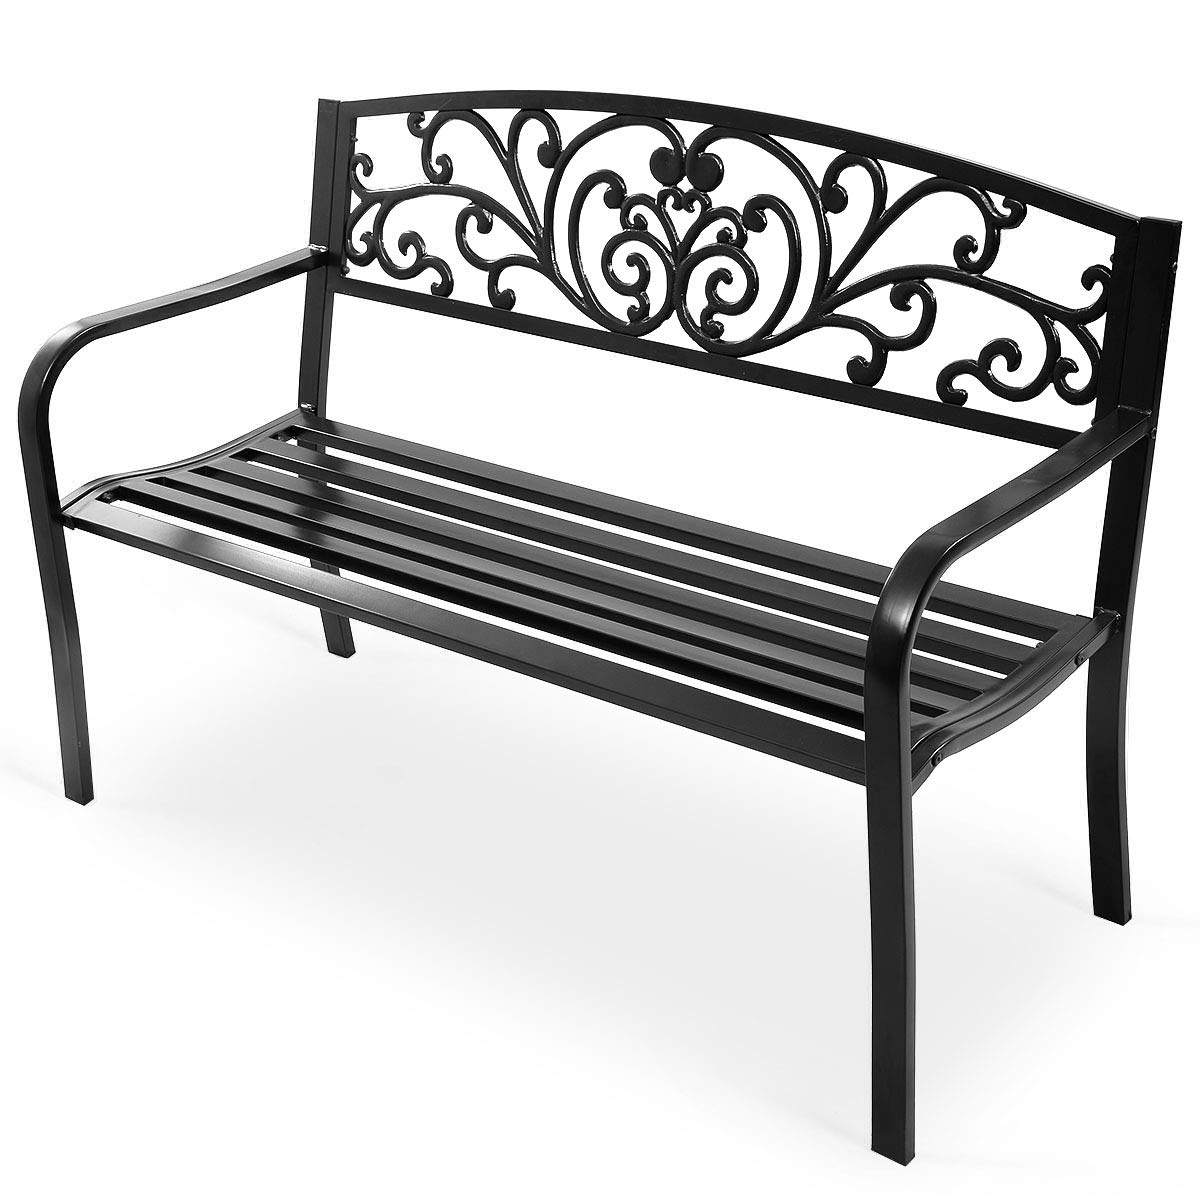 Giantex 50 Patio Garden Bench Loveseats Park Yard Furniture Decor Cast Iron Frame Black Steel with Floral Scroll Pattern